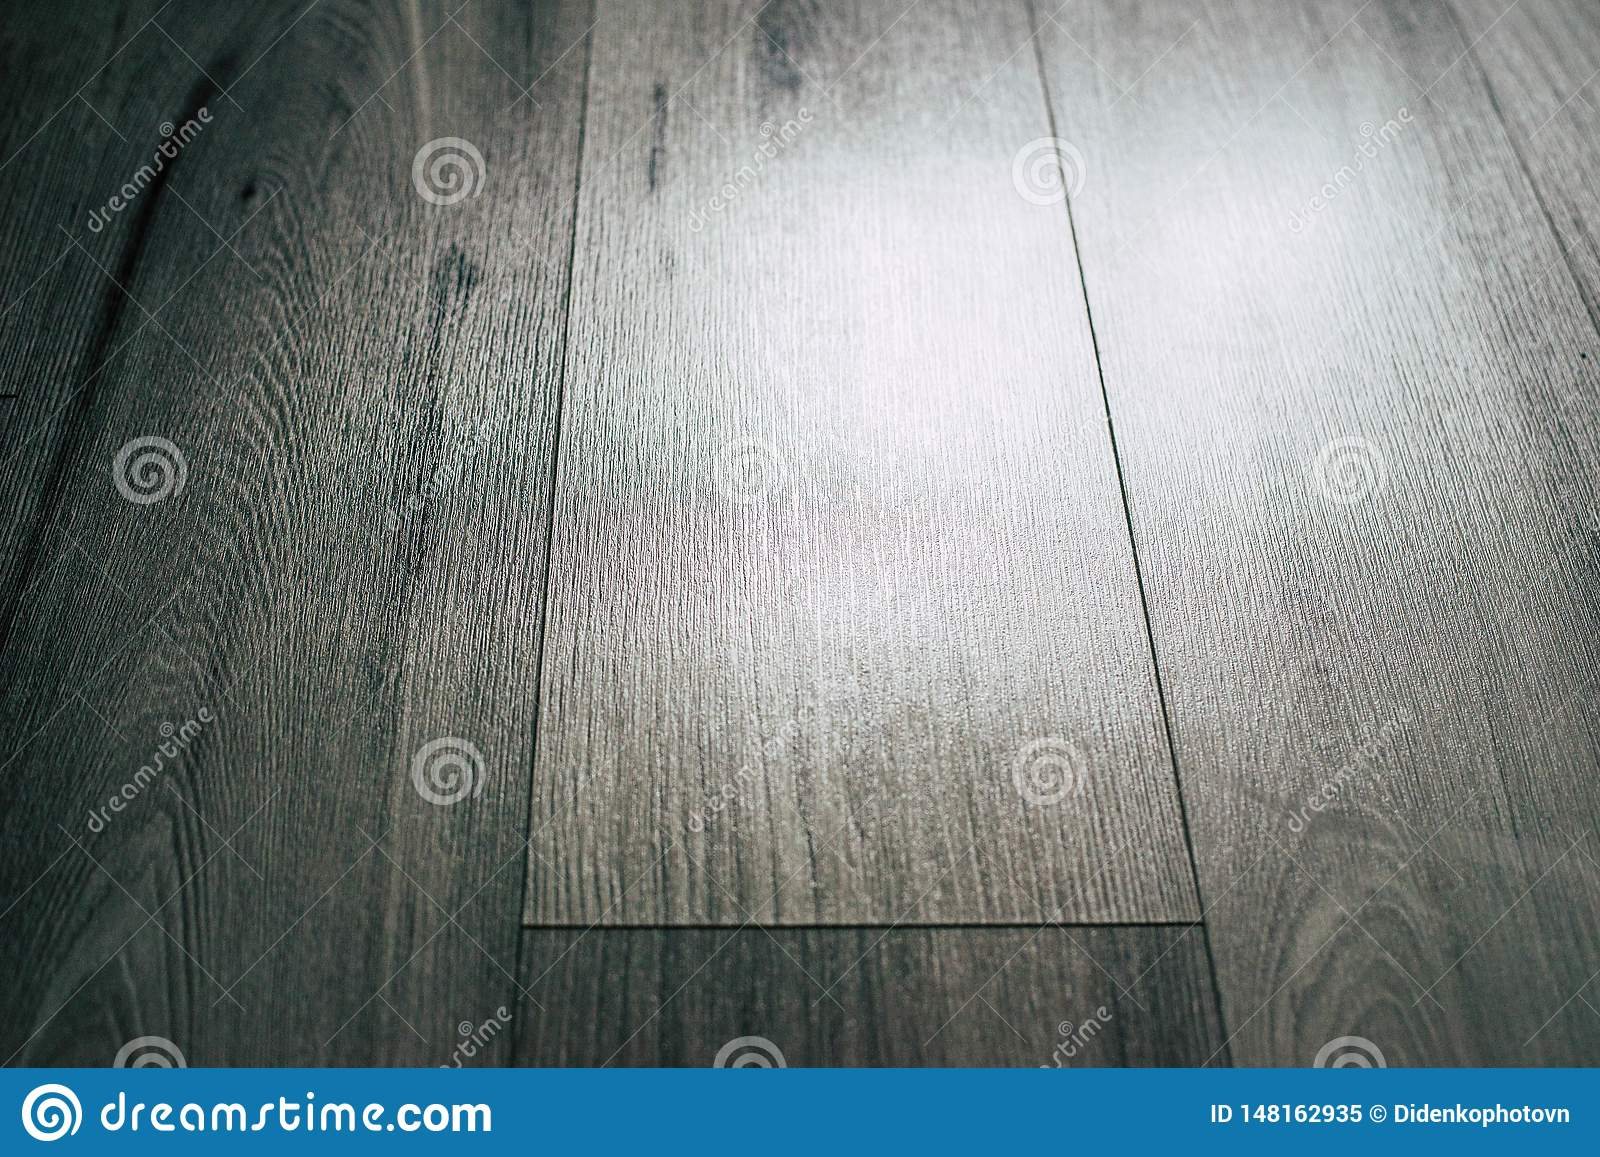 Magnificent wooden background in gray tone